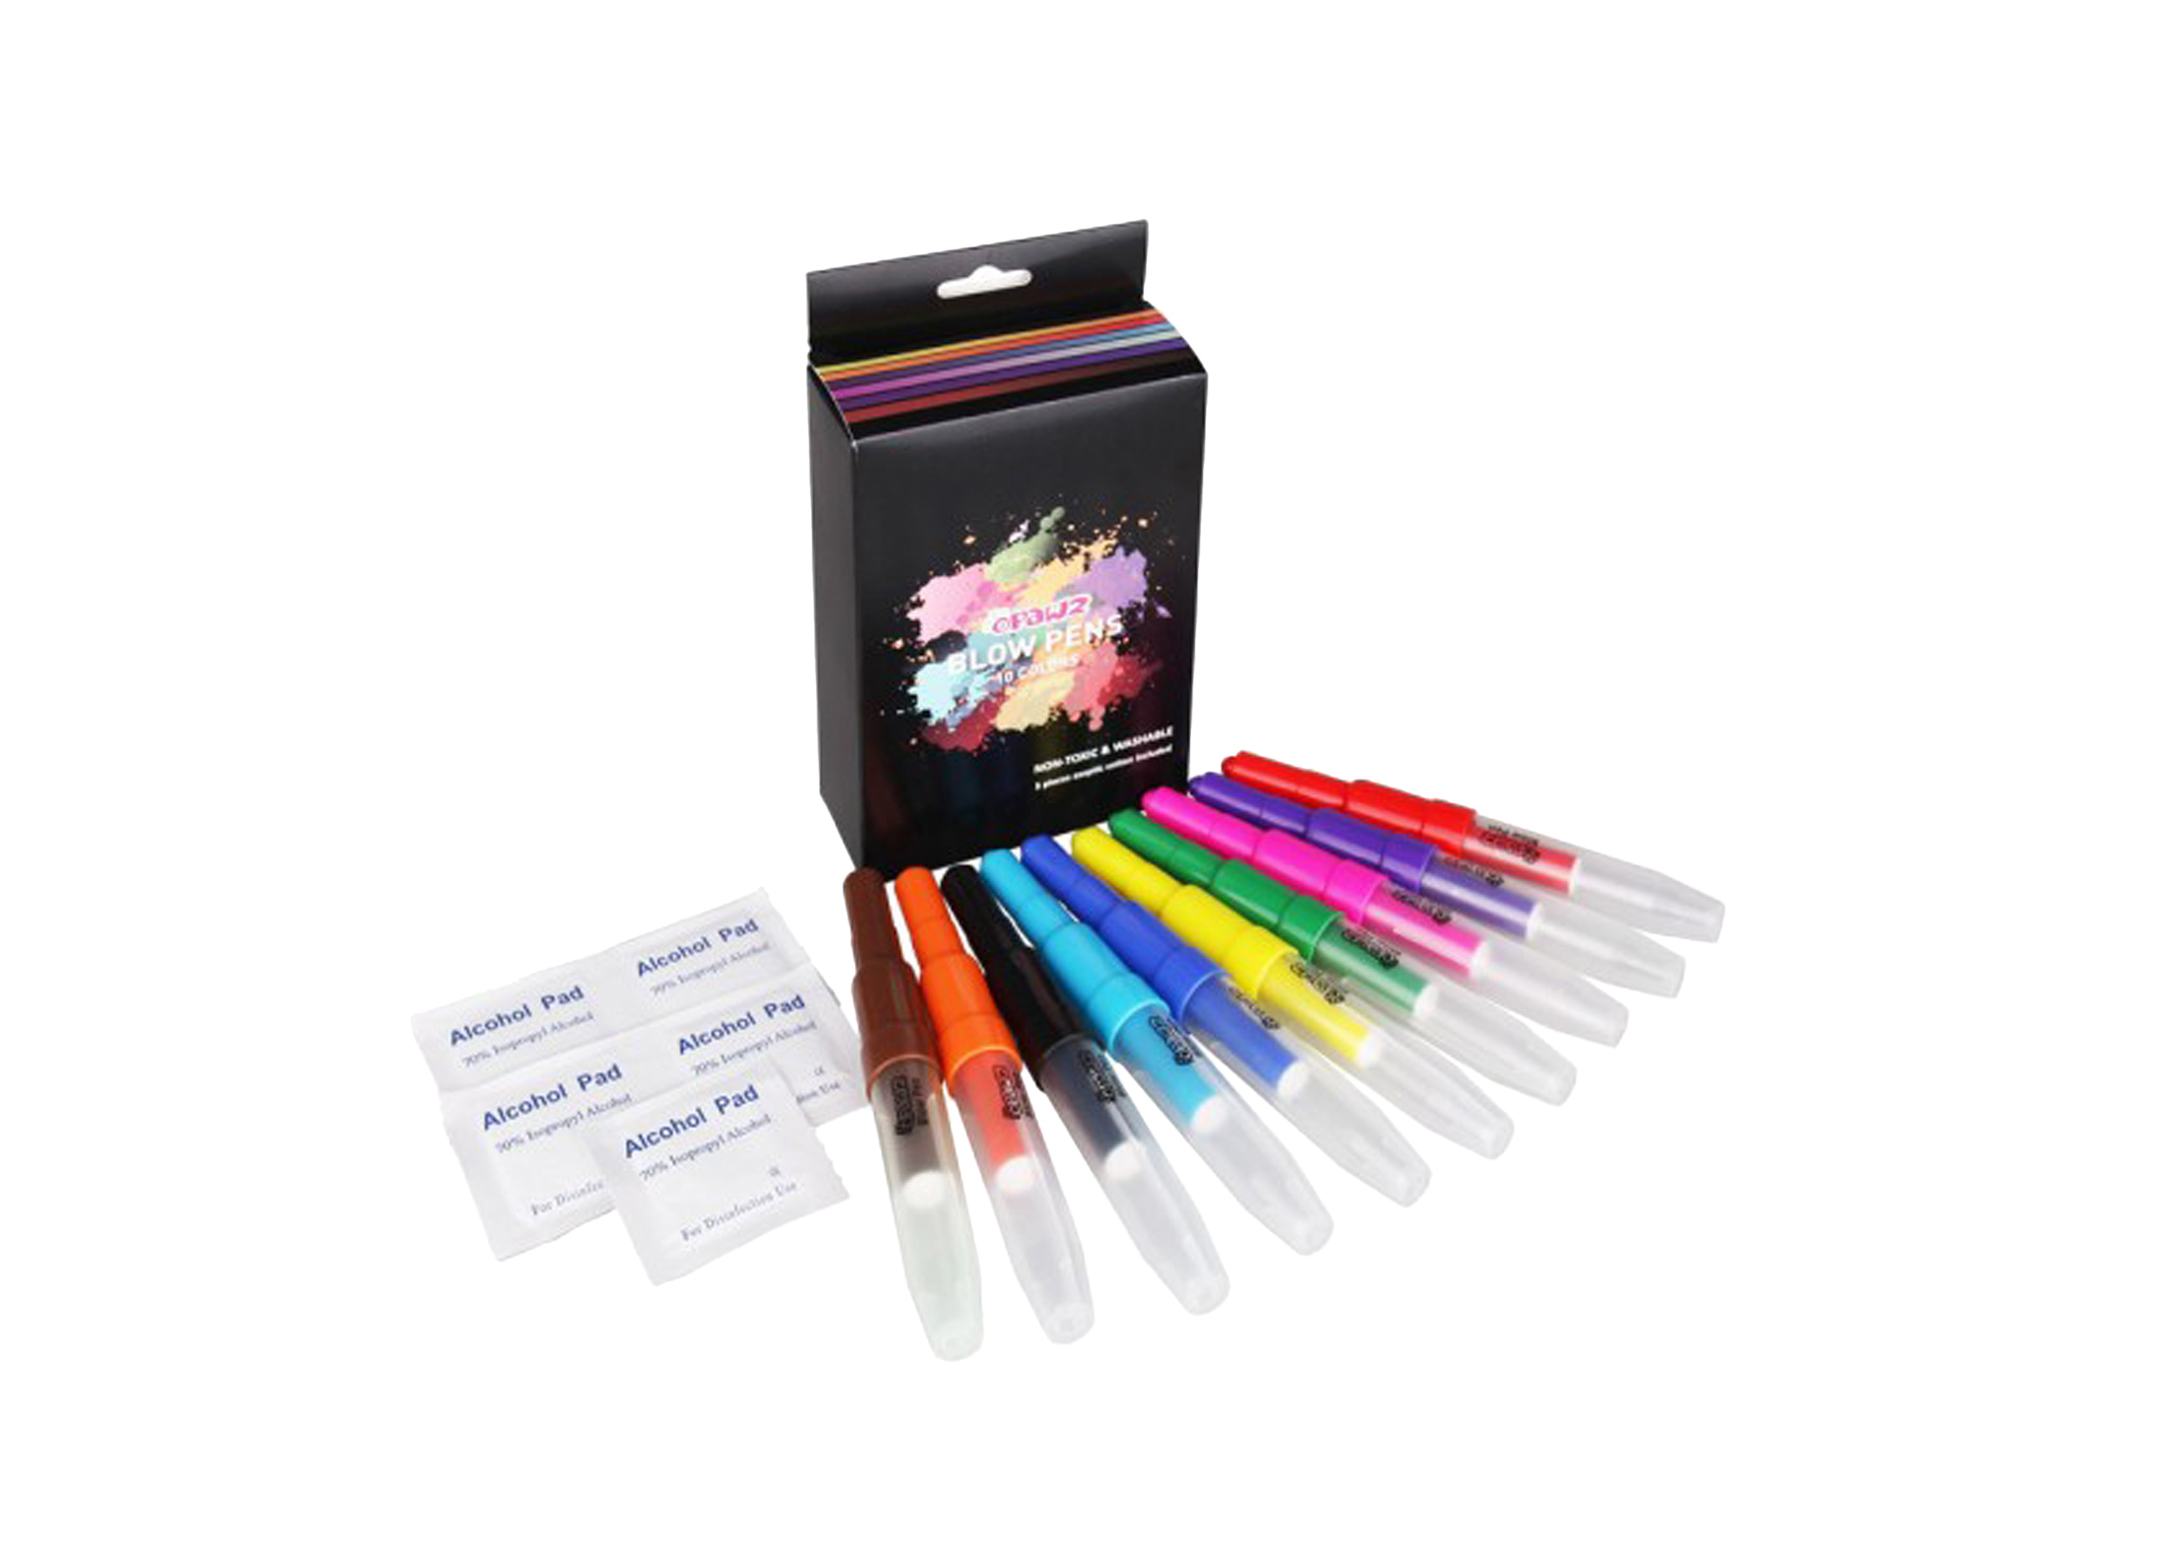 Opawz Blow Pen 10 pcs Crayons